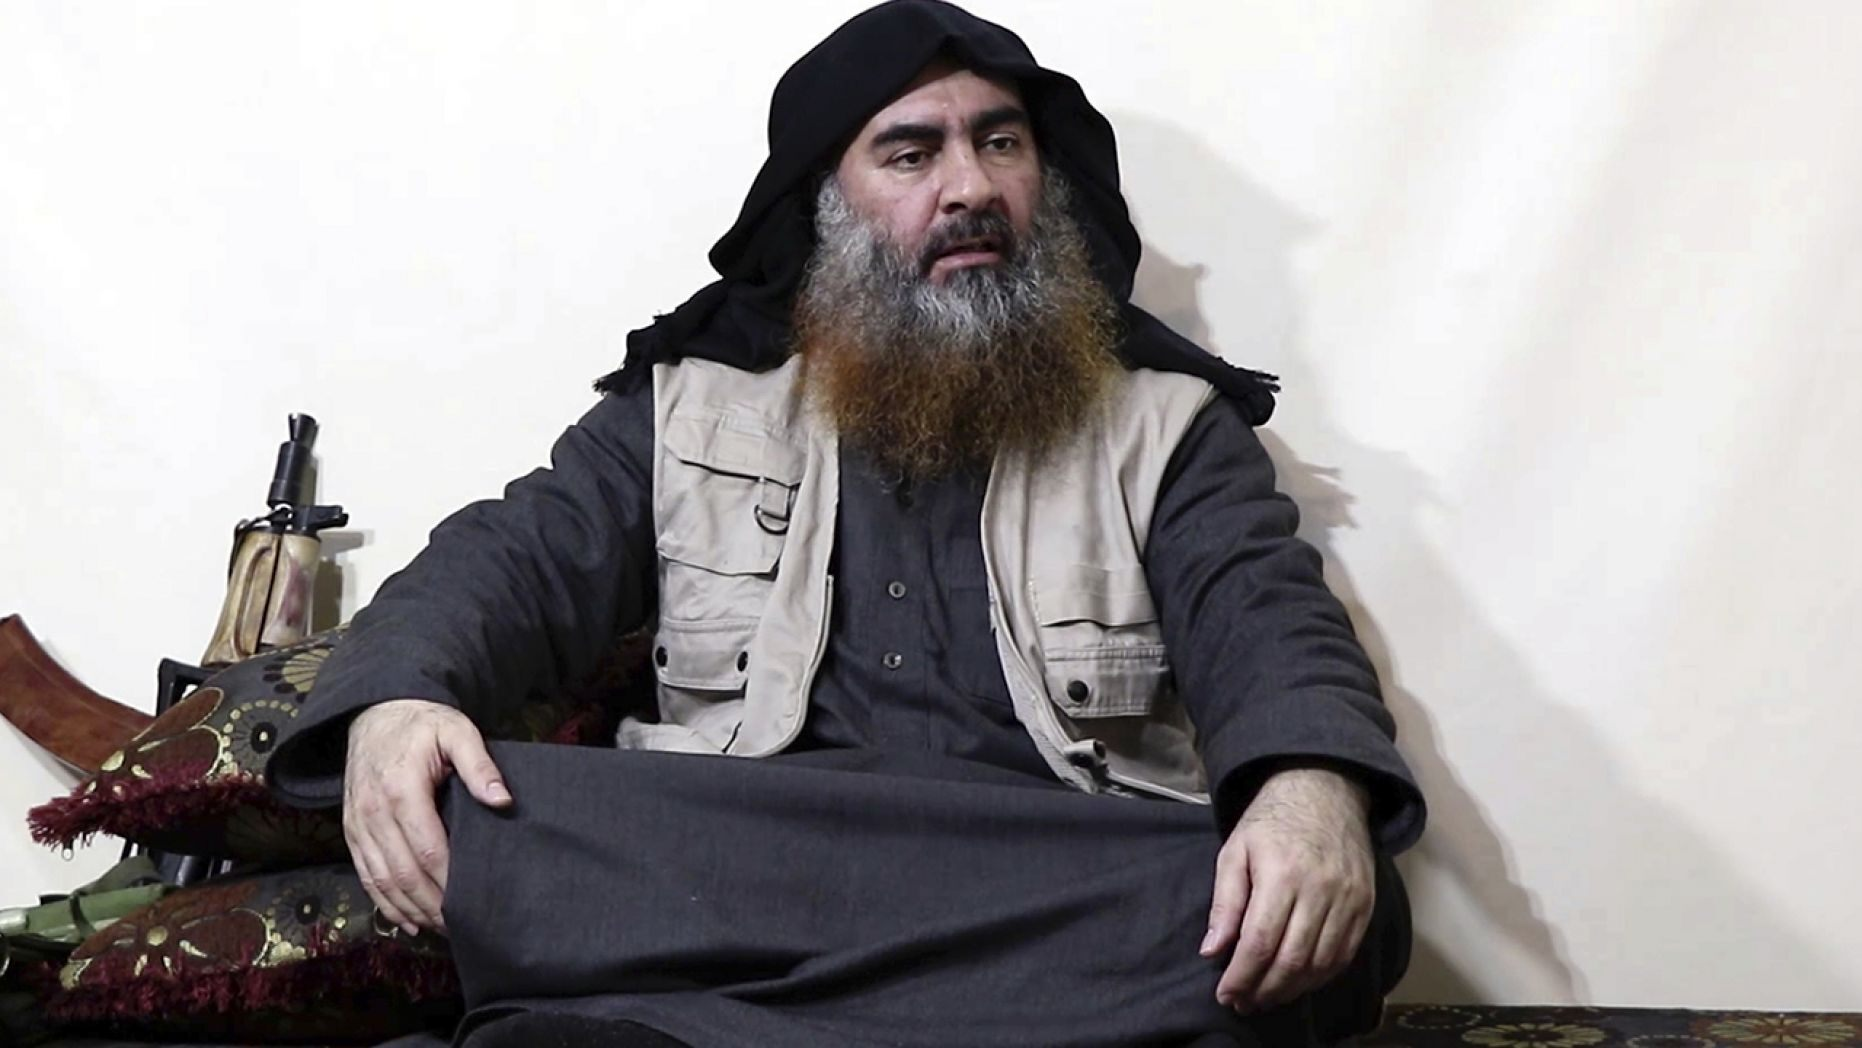 The blast from al-Baghdadi's suicide collapsed part of the tunnel he had fled down, leaving his mutilated remains buried underneath a pile of rubble.